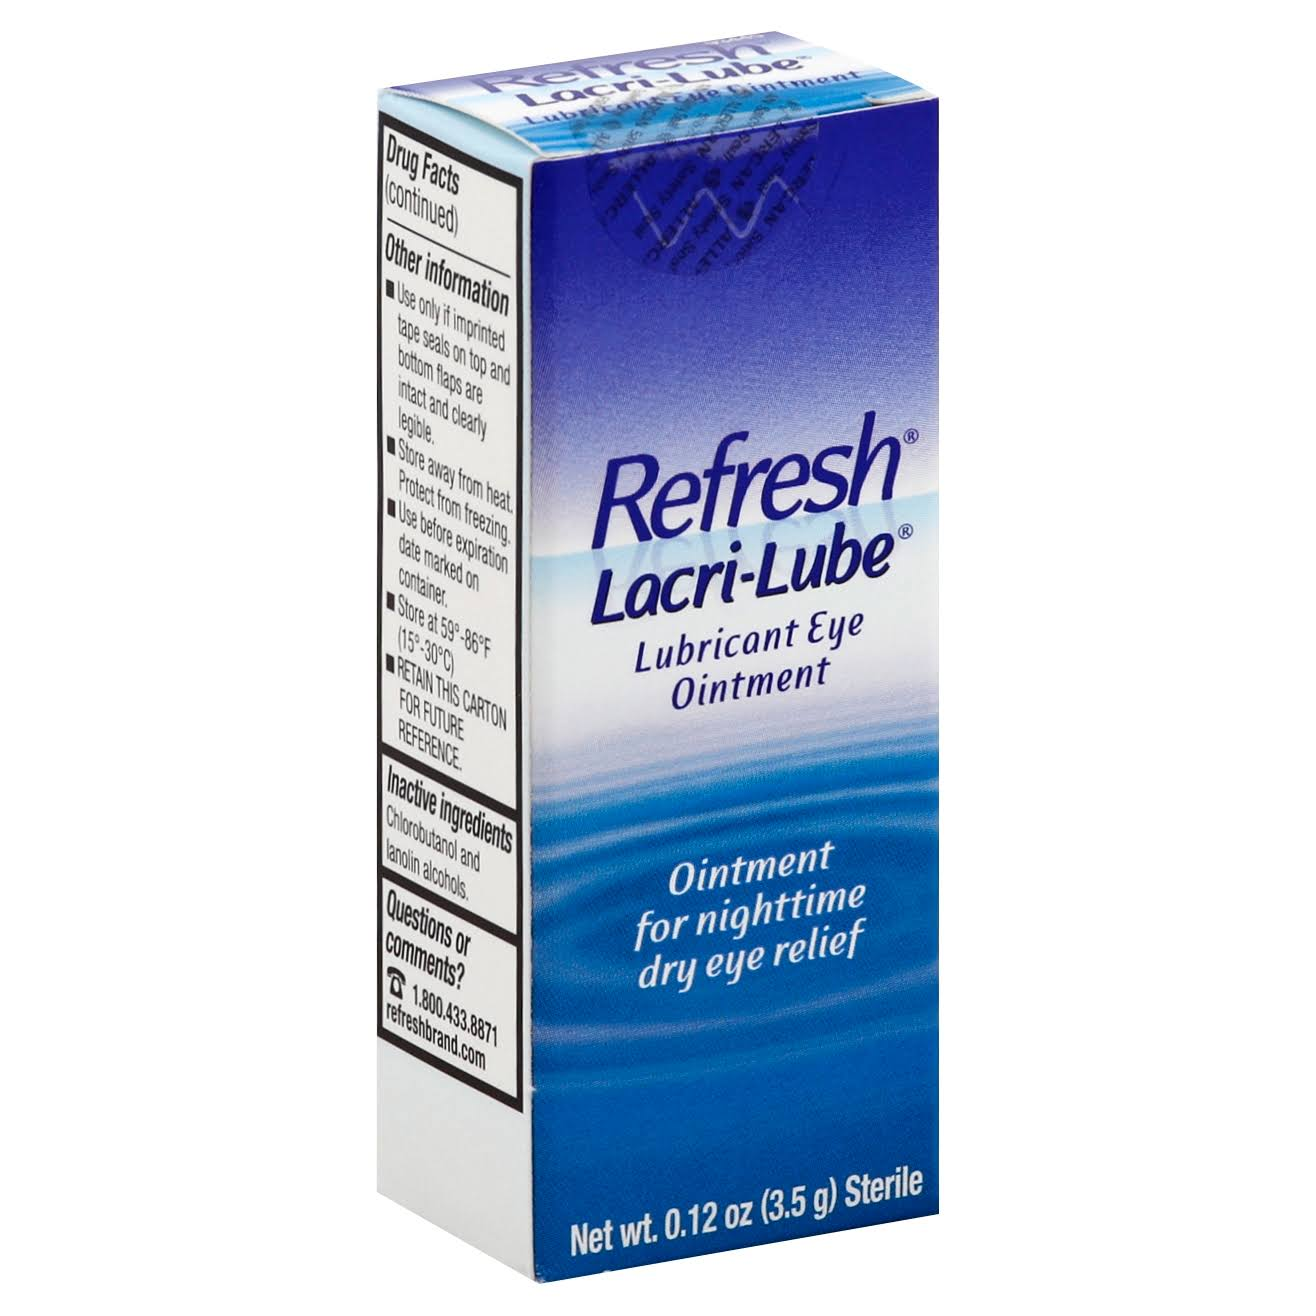 Allercan Refresh Lacri-Lube Lubricant Eye Ointment - 3.5g